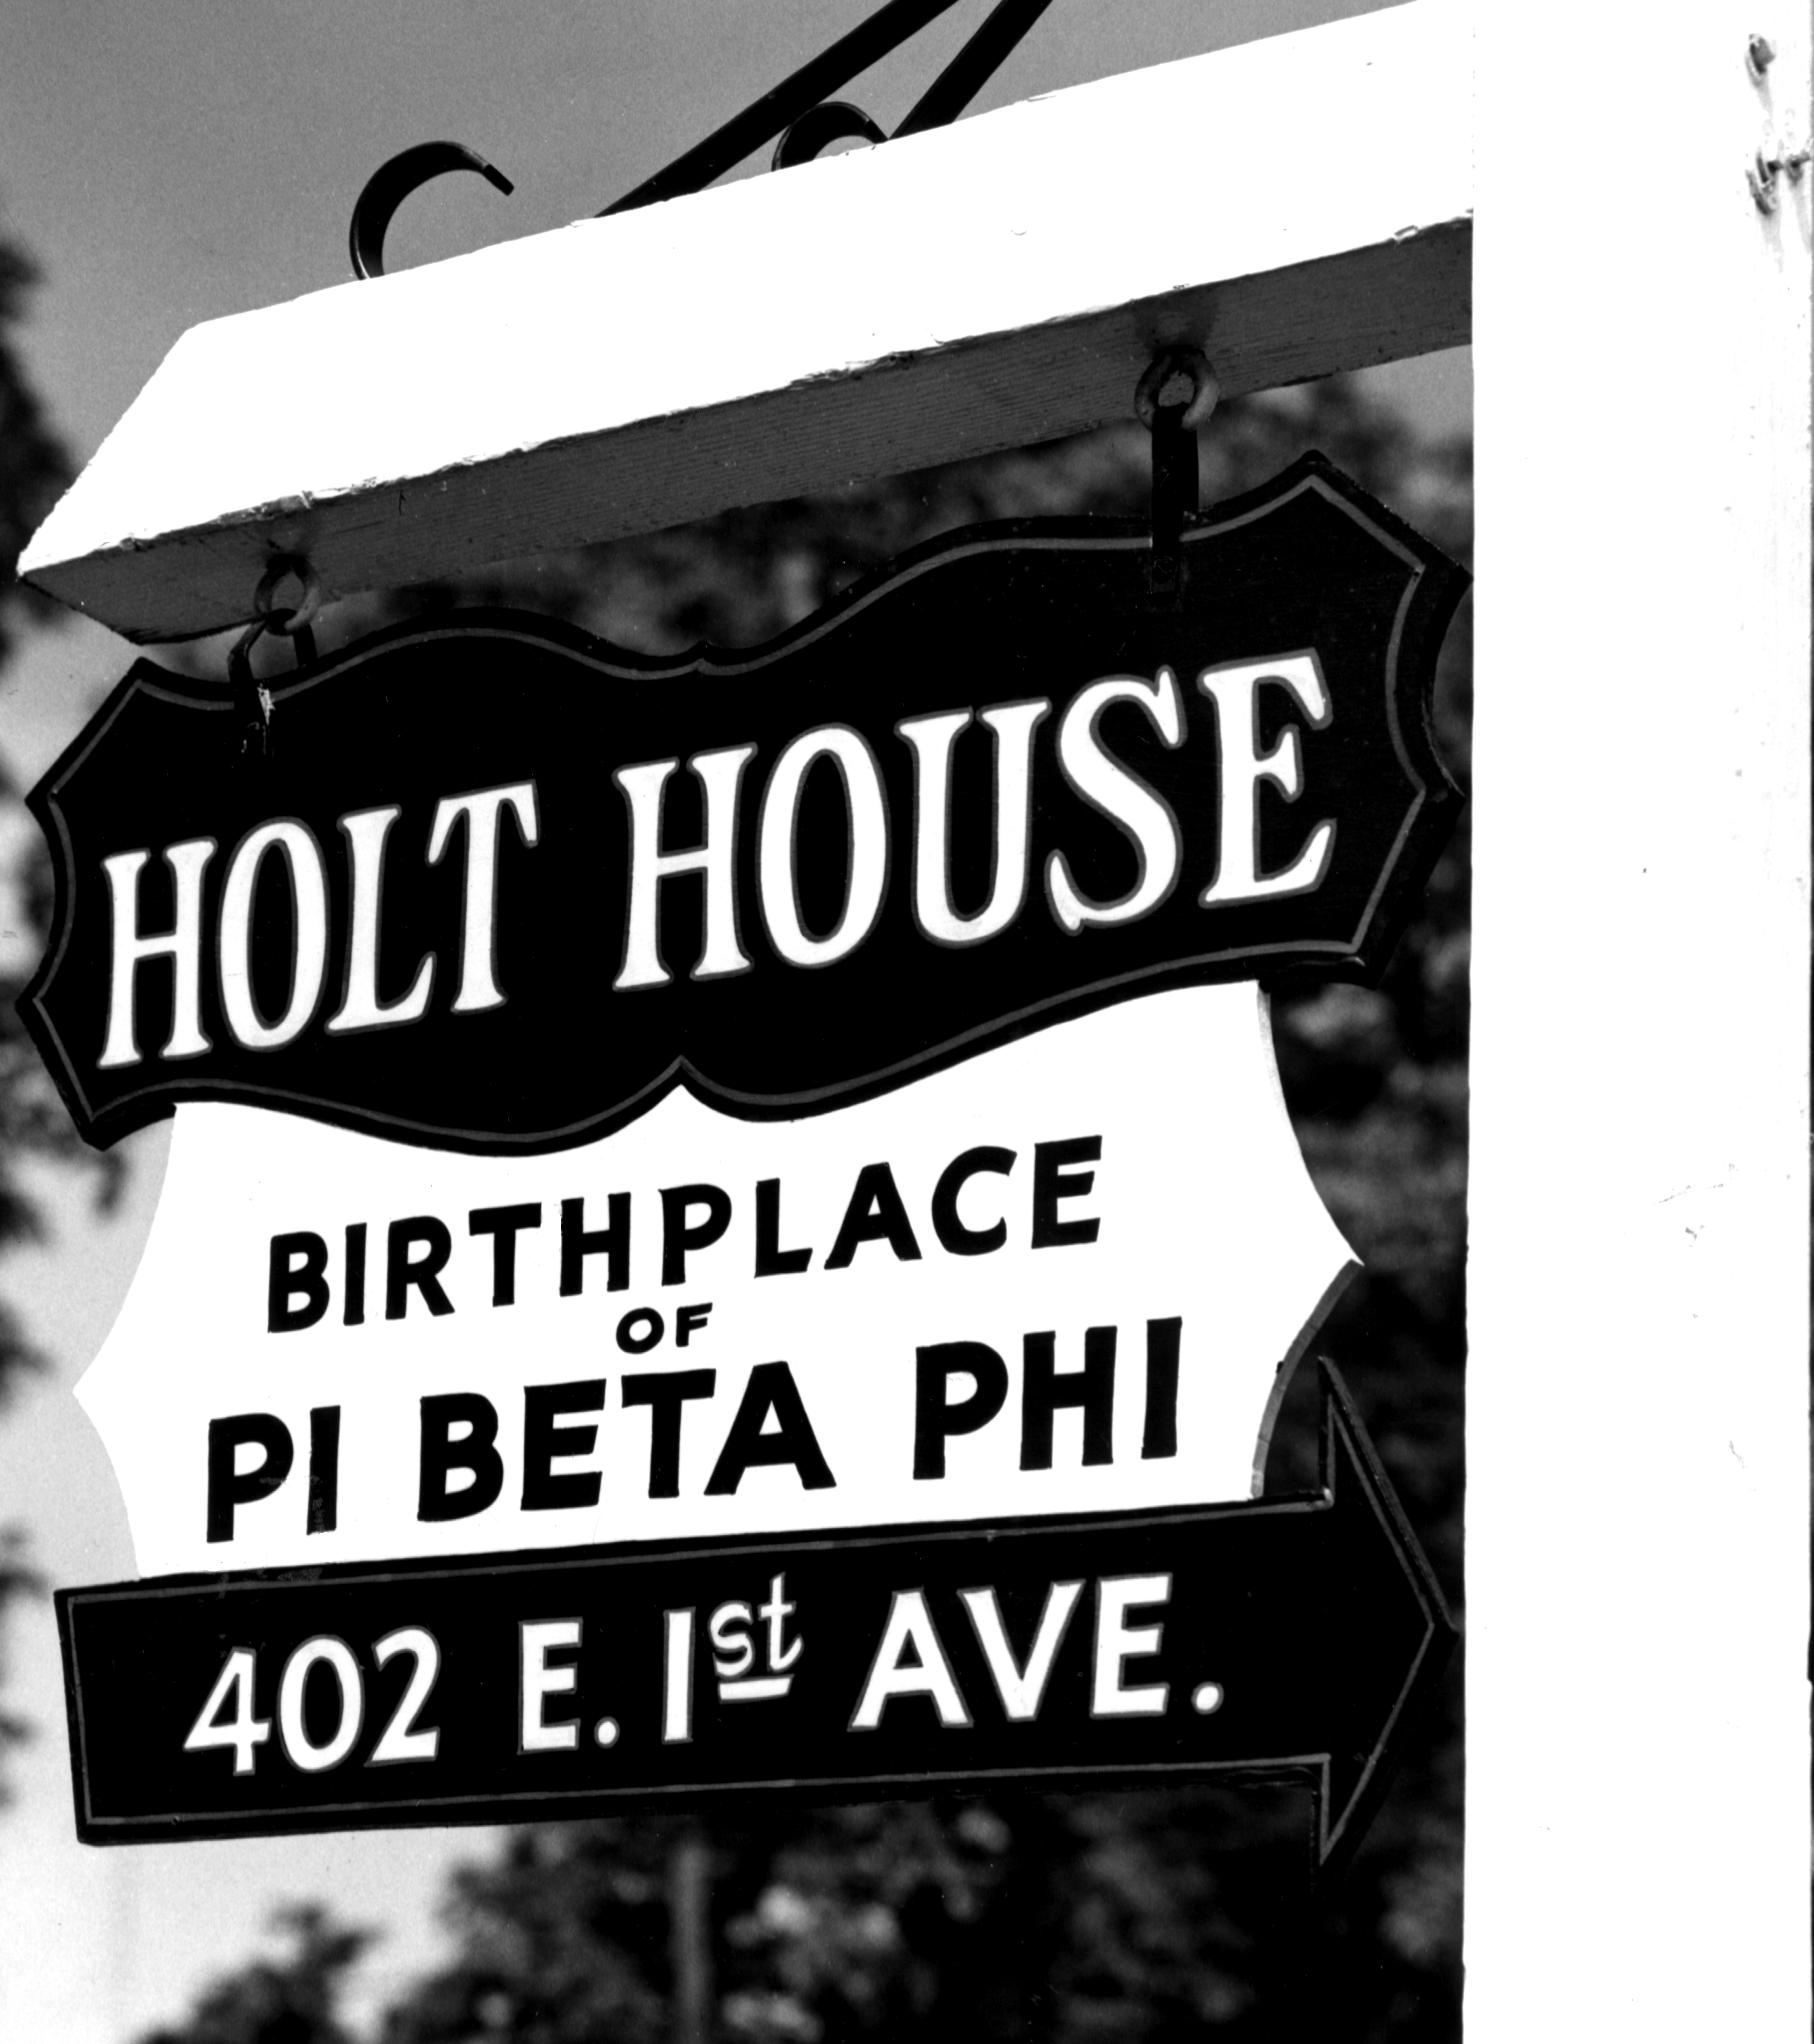 Pi Beta Phi was founded at Holt House in Monmouth, Illinois